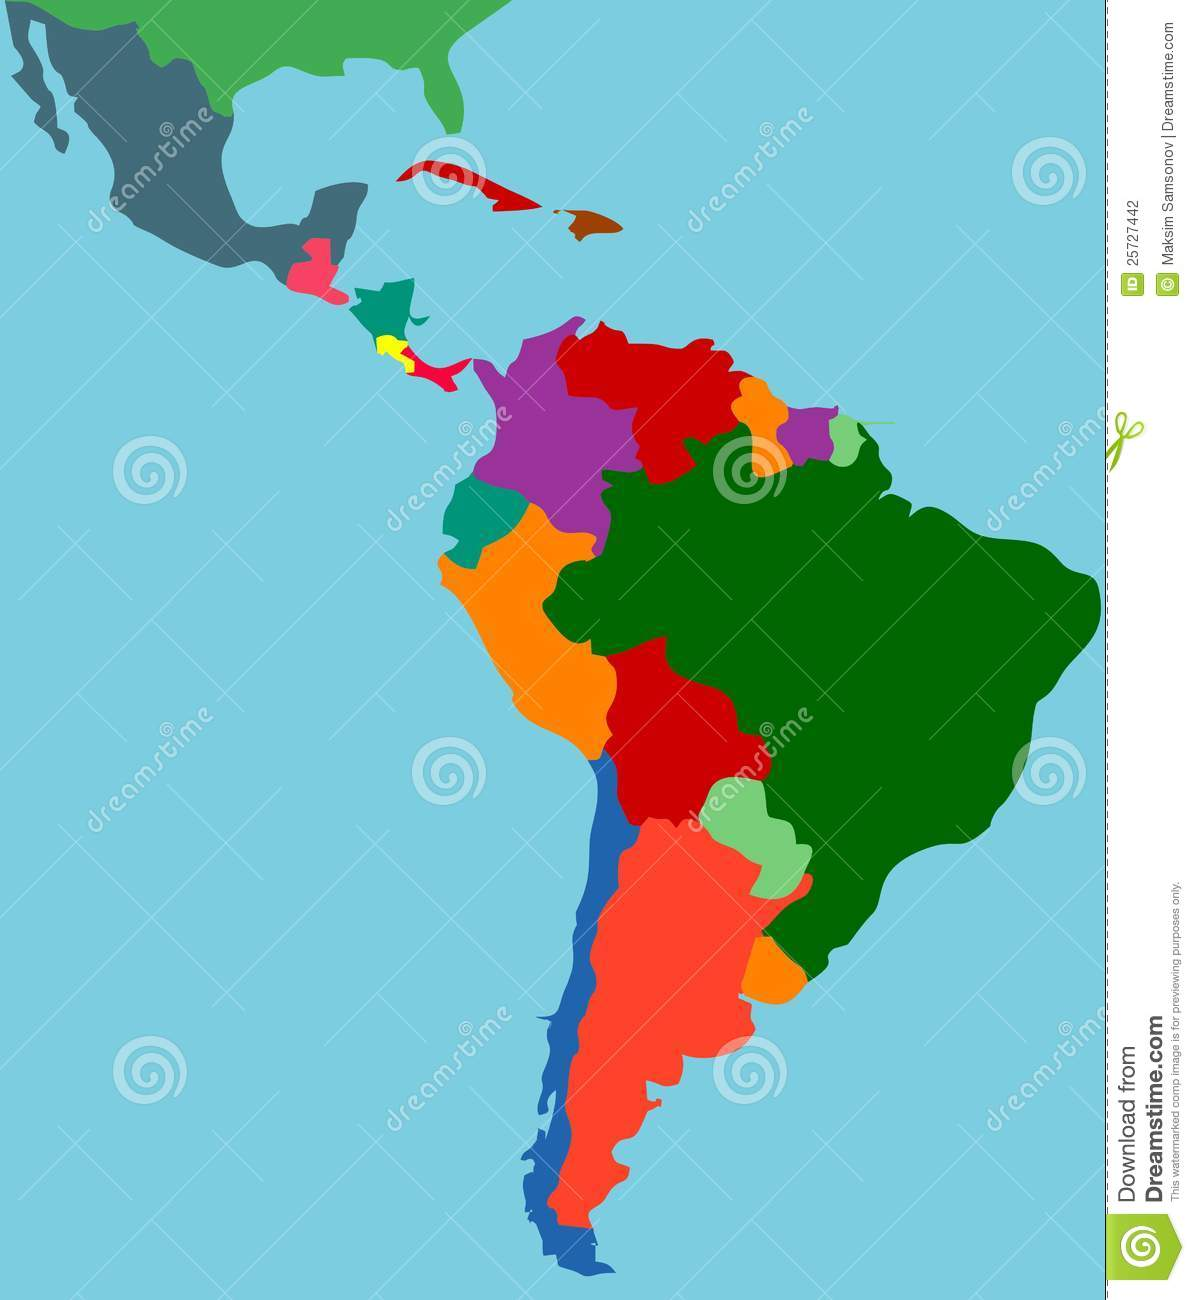 usa map with state names with Stock Photography Latin America Image25727442 on 1129312 in addition State Maps further Free Vector Map Pittsburgh Pennsylvania Adobe Illustrator further San Simeon further Us Weather Map 7 Day.